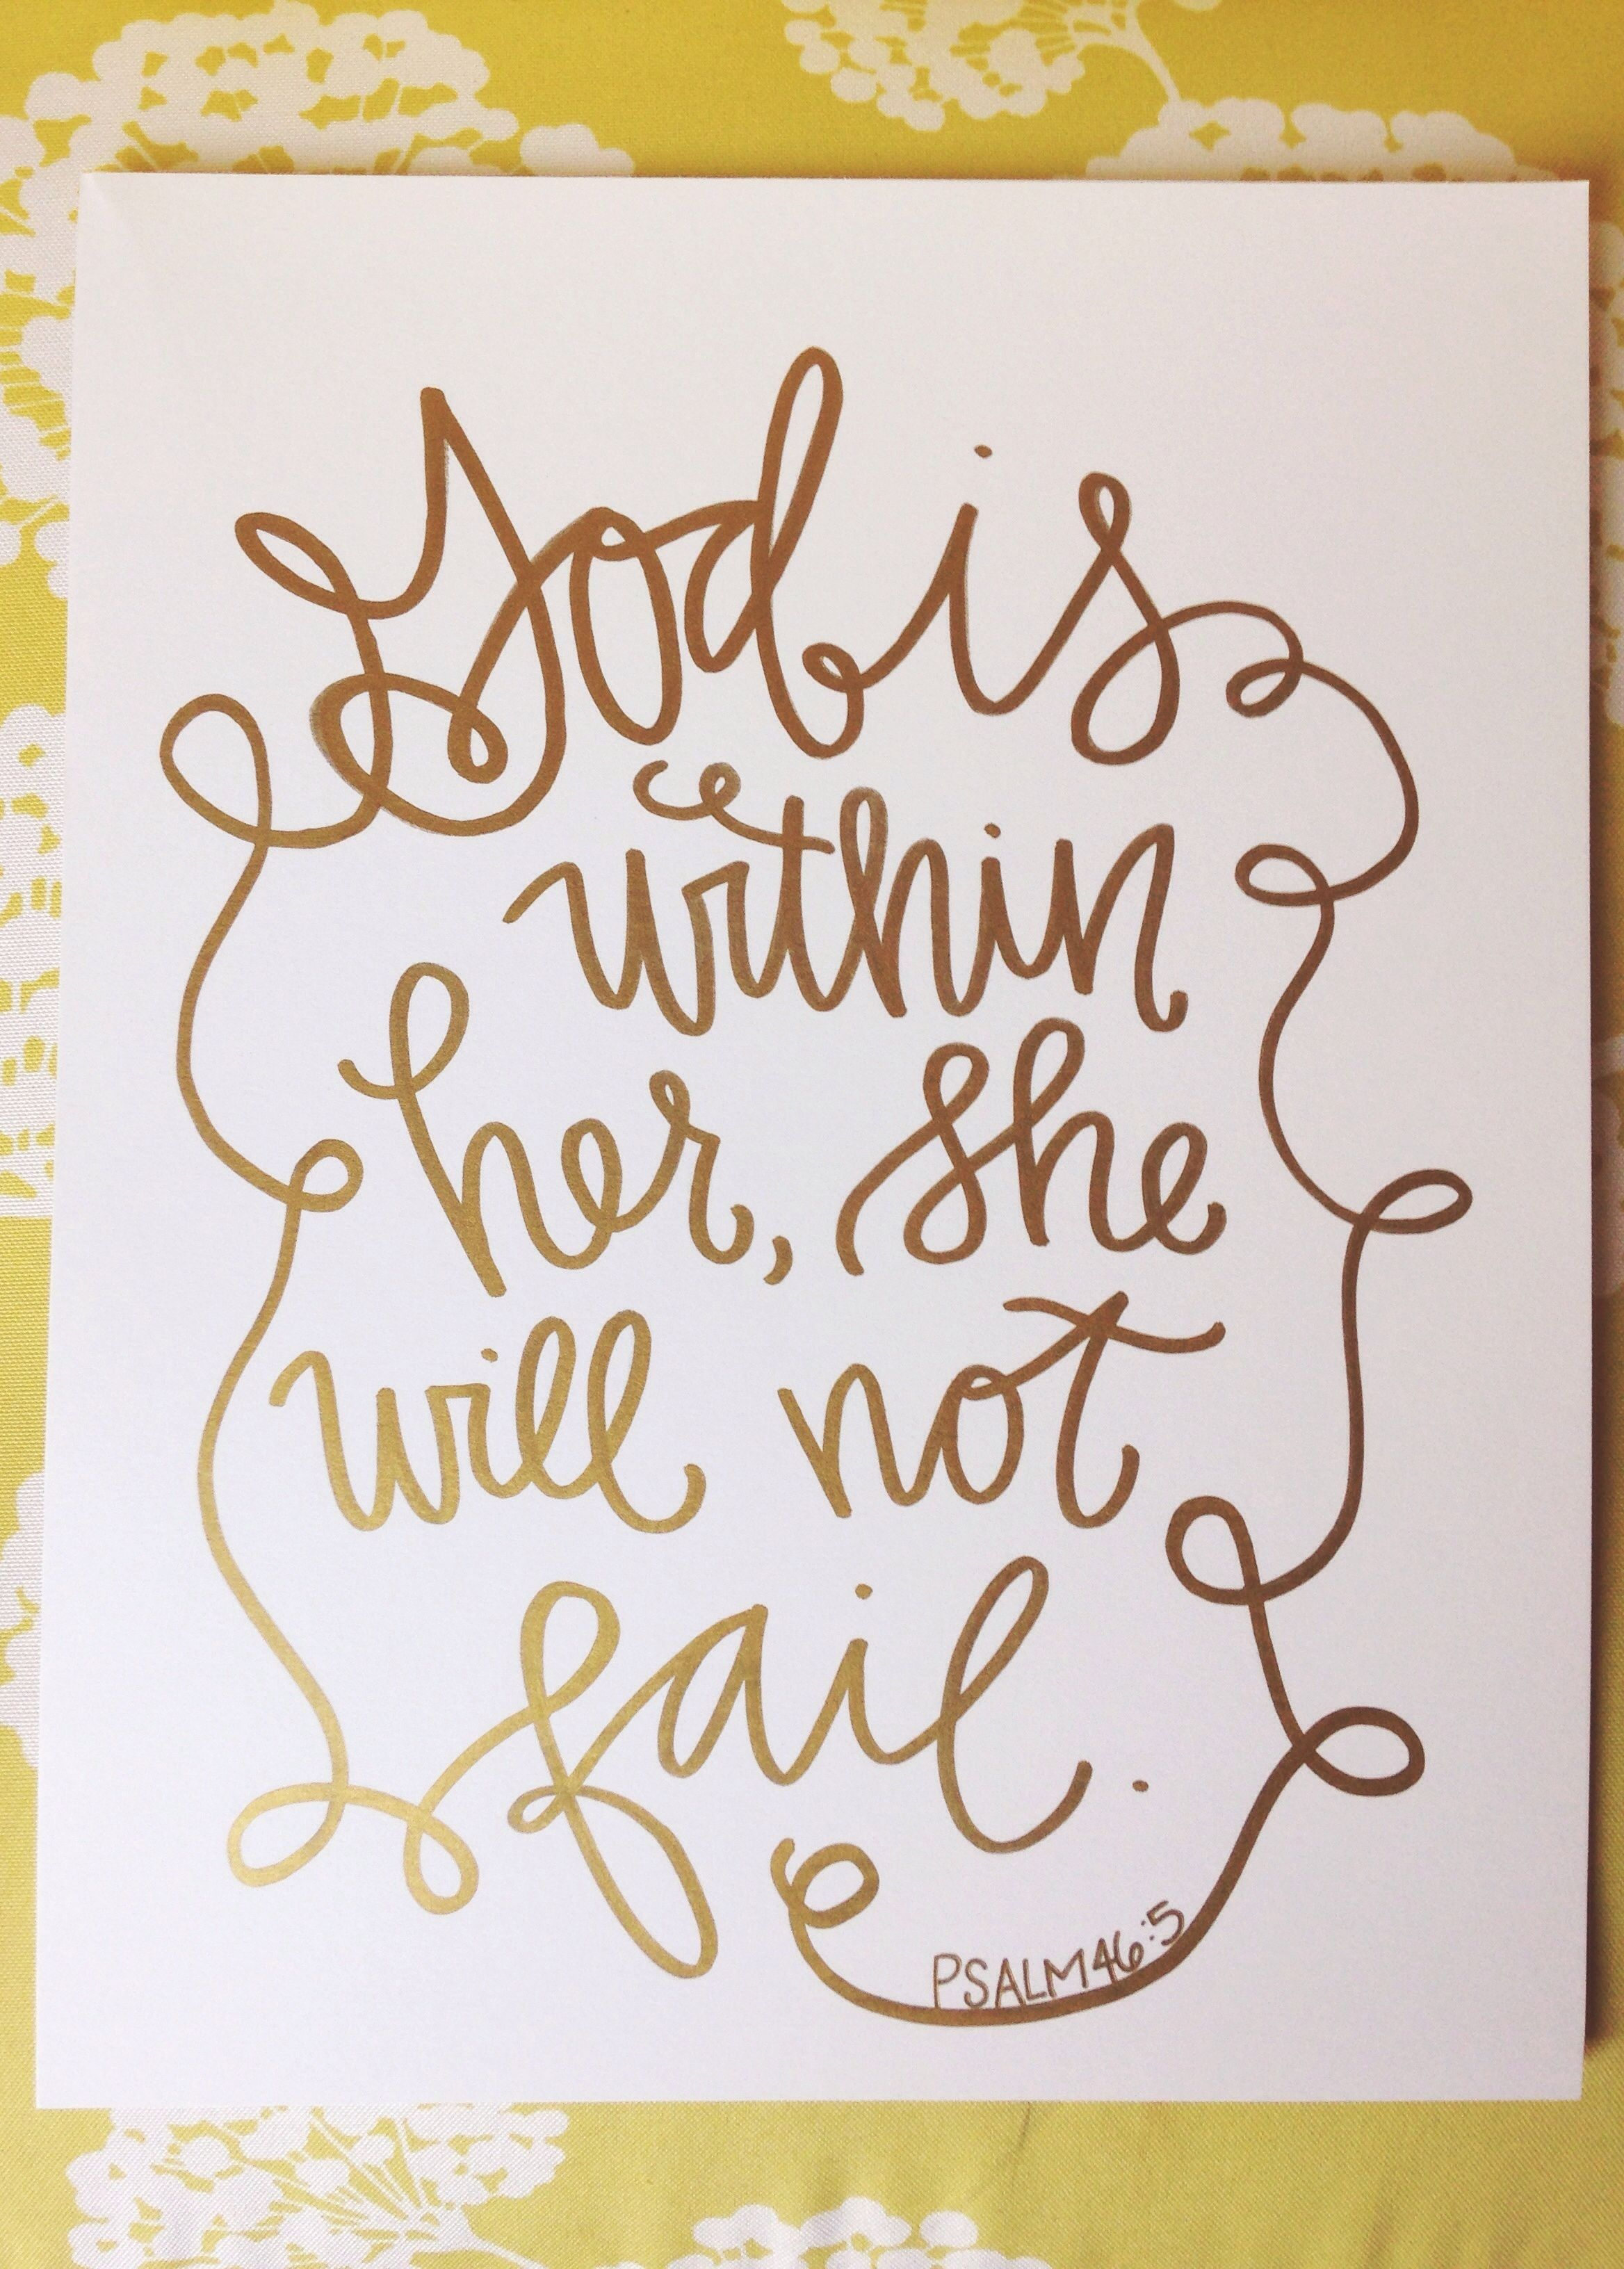 God is within her she will not fail Alliesmithdesigns.etsy.com ...